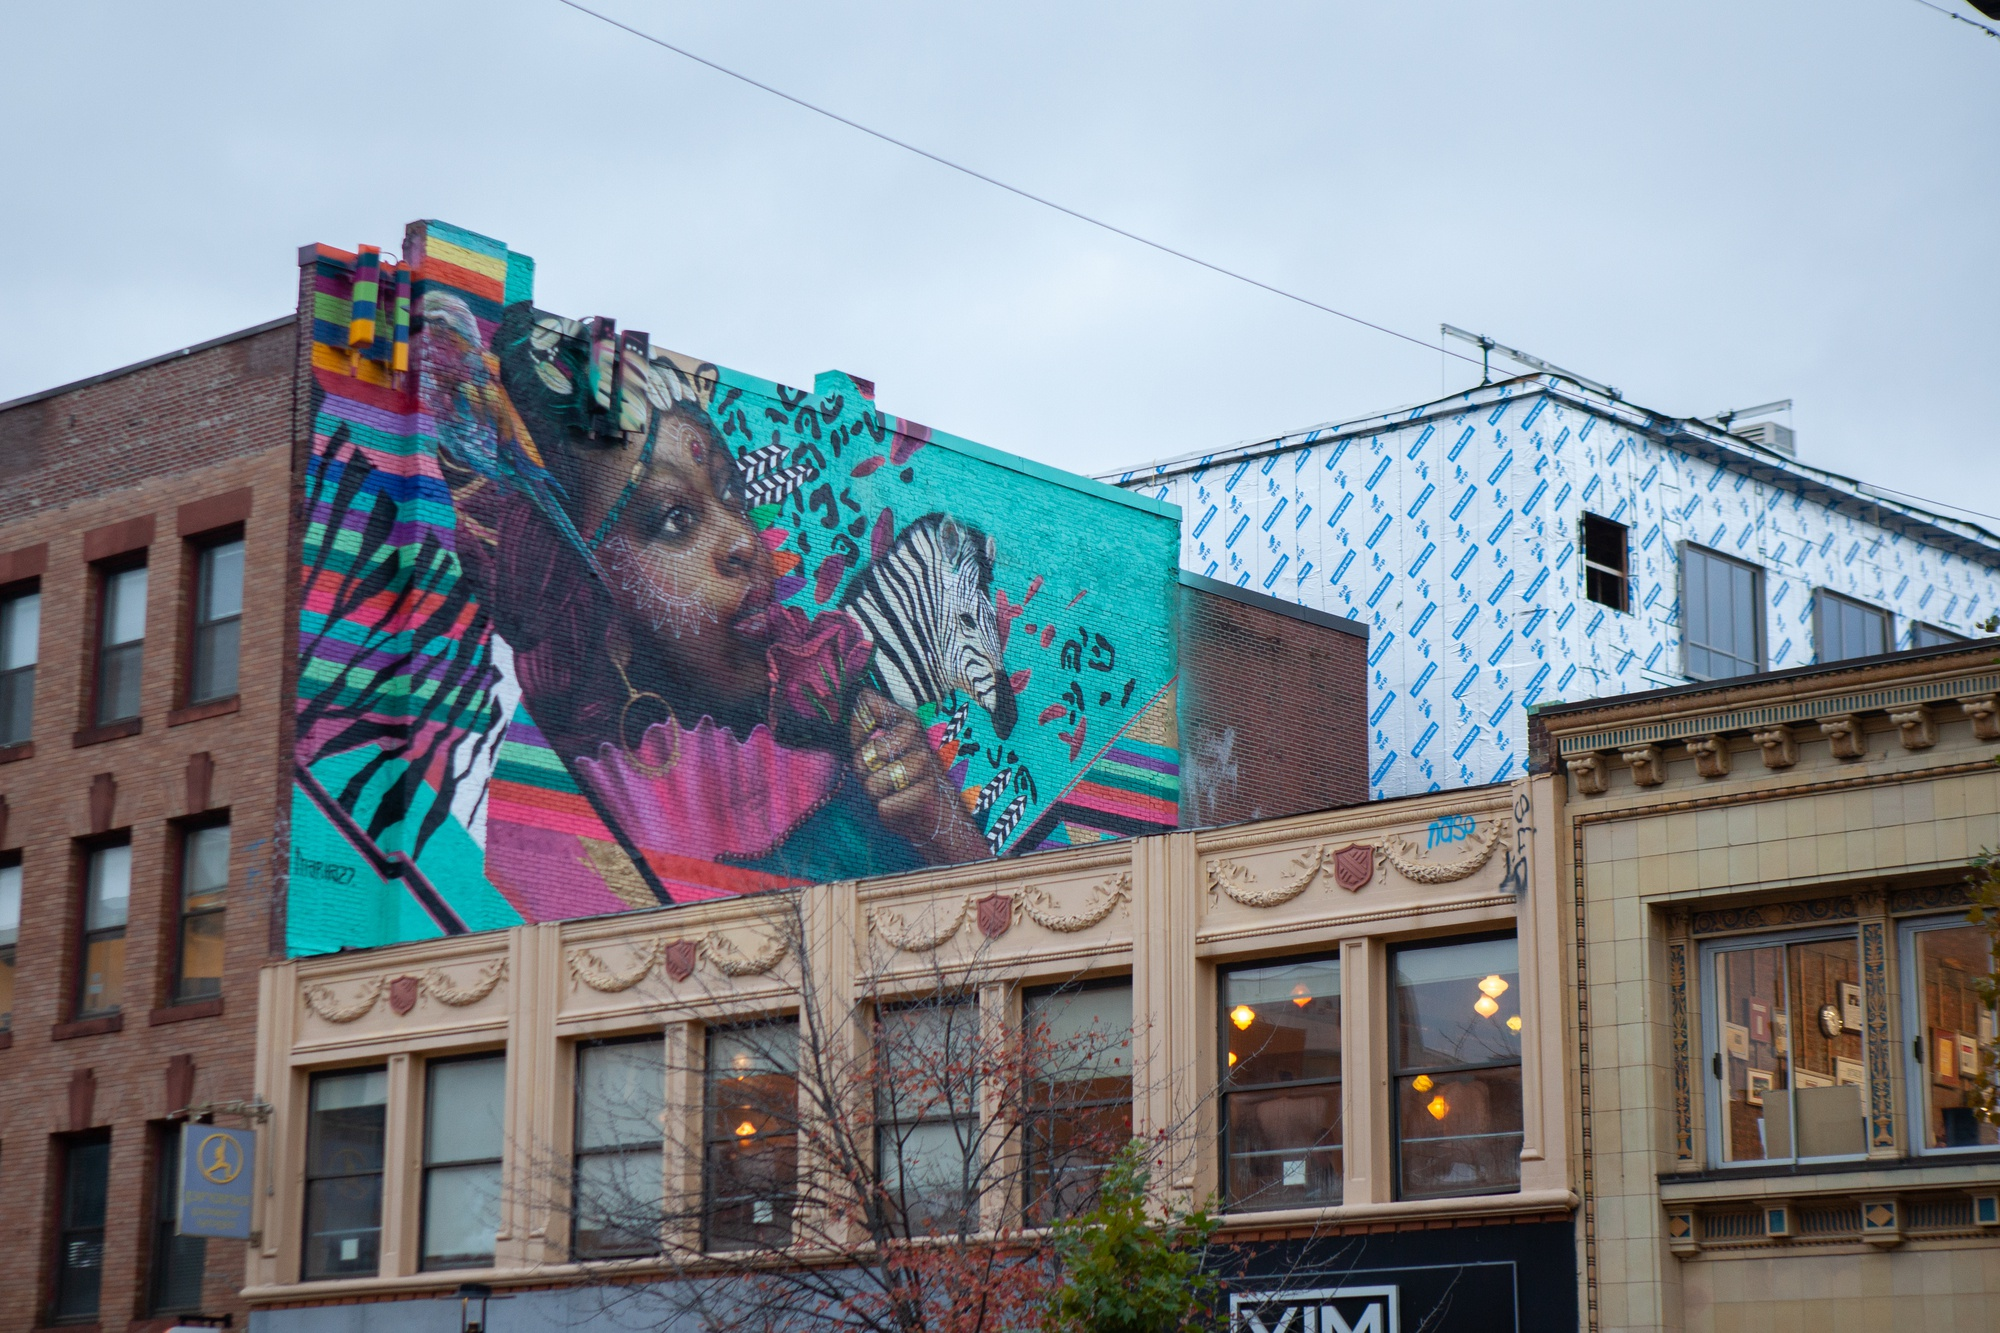 Central Square has long been home to an array of murals.